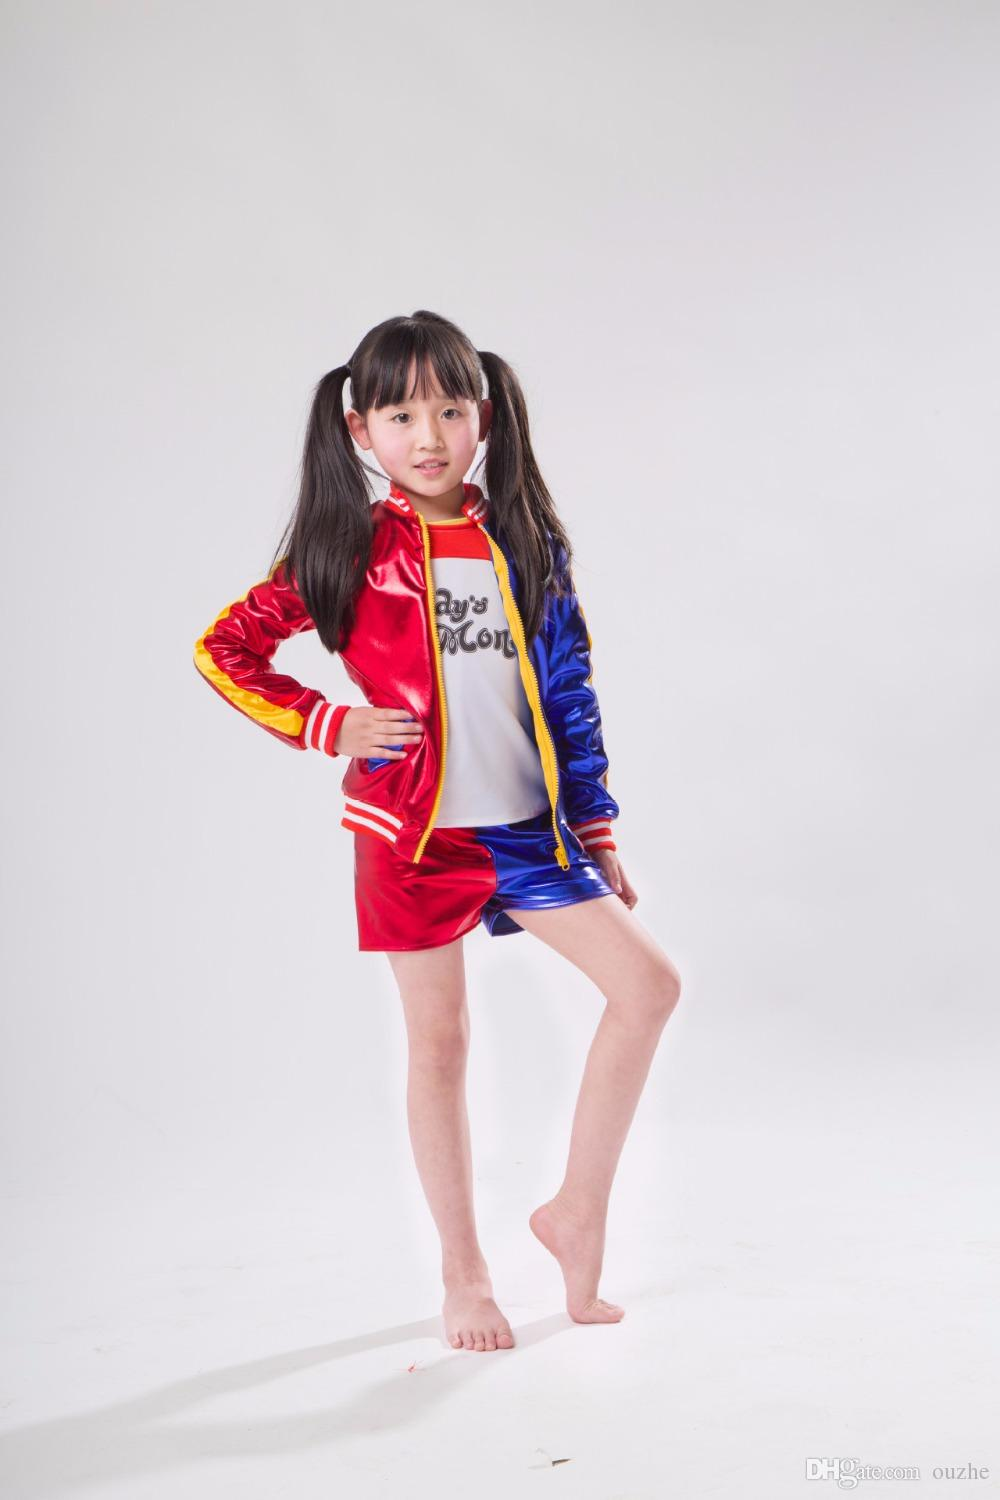 Hot Girls Harley Quinn Costume Jacket T Shirt Tee Lil Monster Suicide Squad Cosplay Halloween Costume For Kids Girl Hot Girl Harley Quinn Dressup Jacket Cos